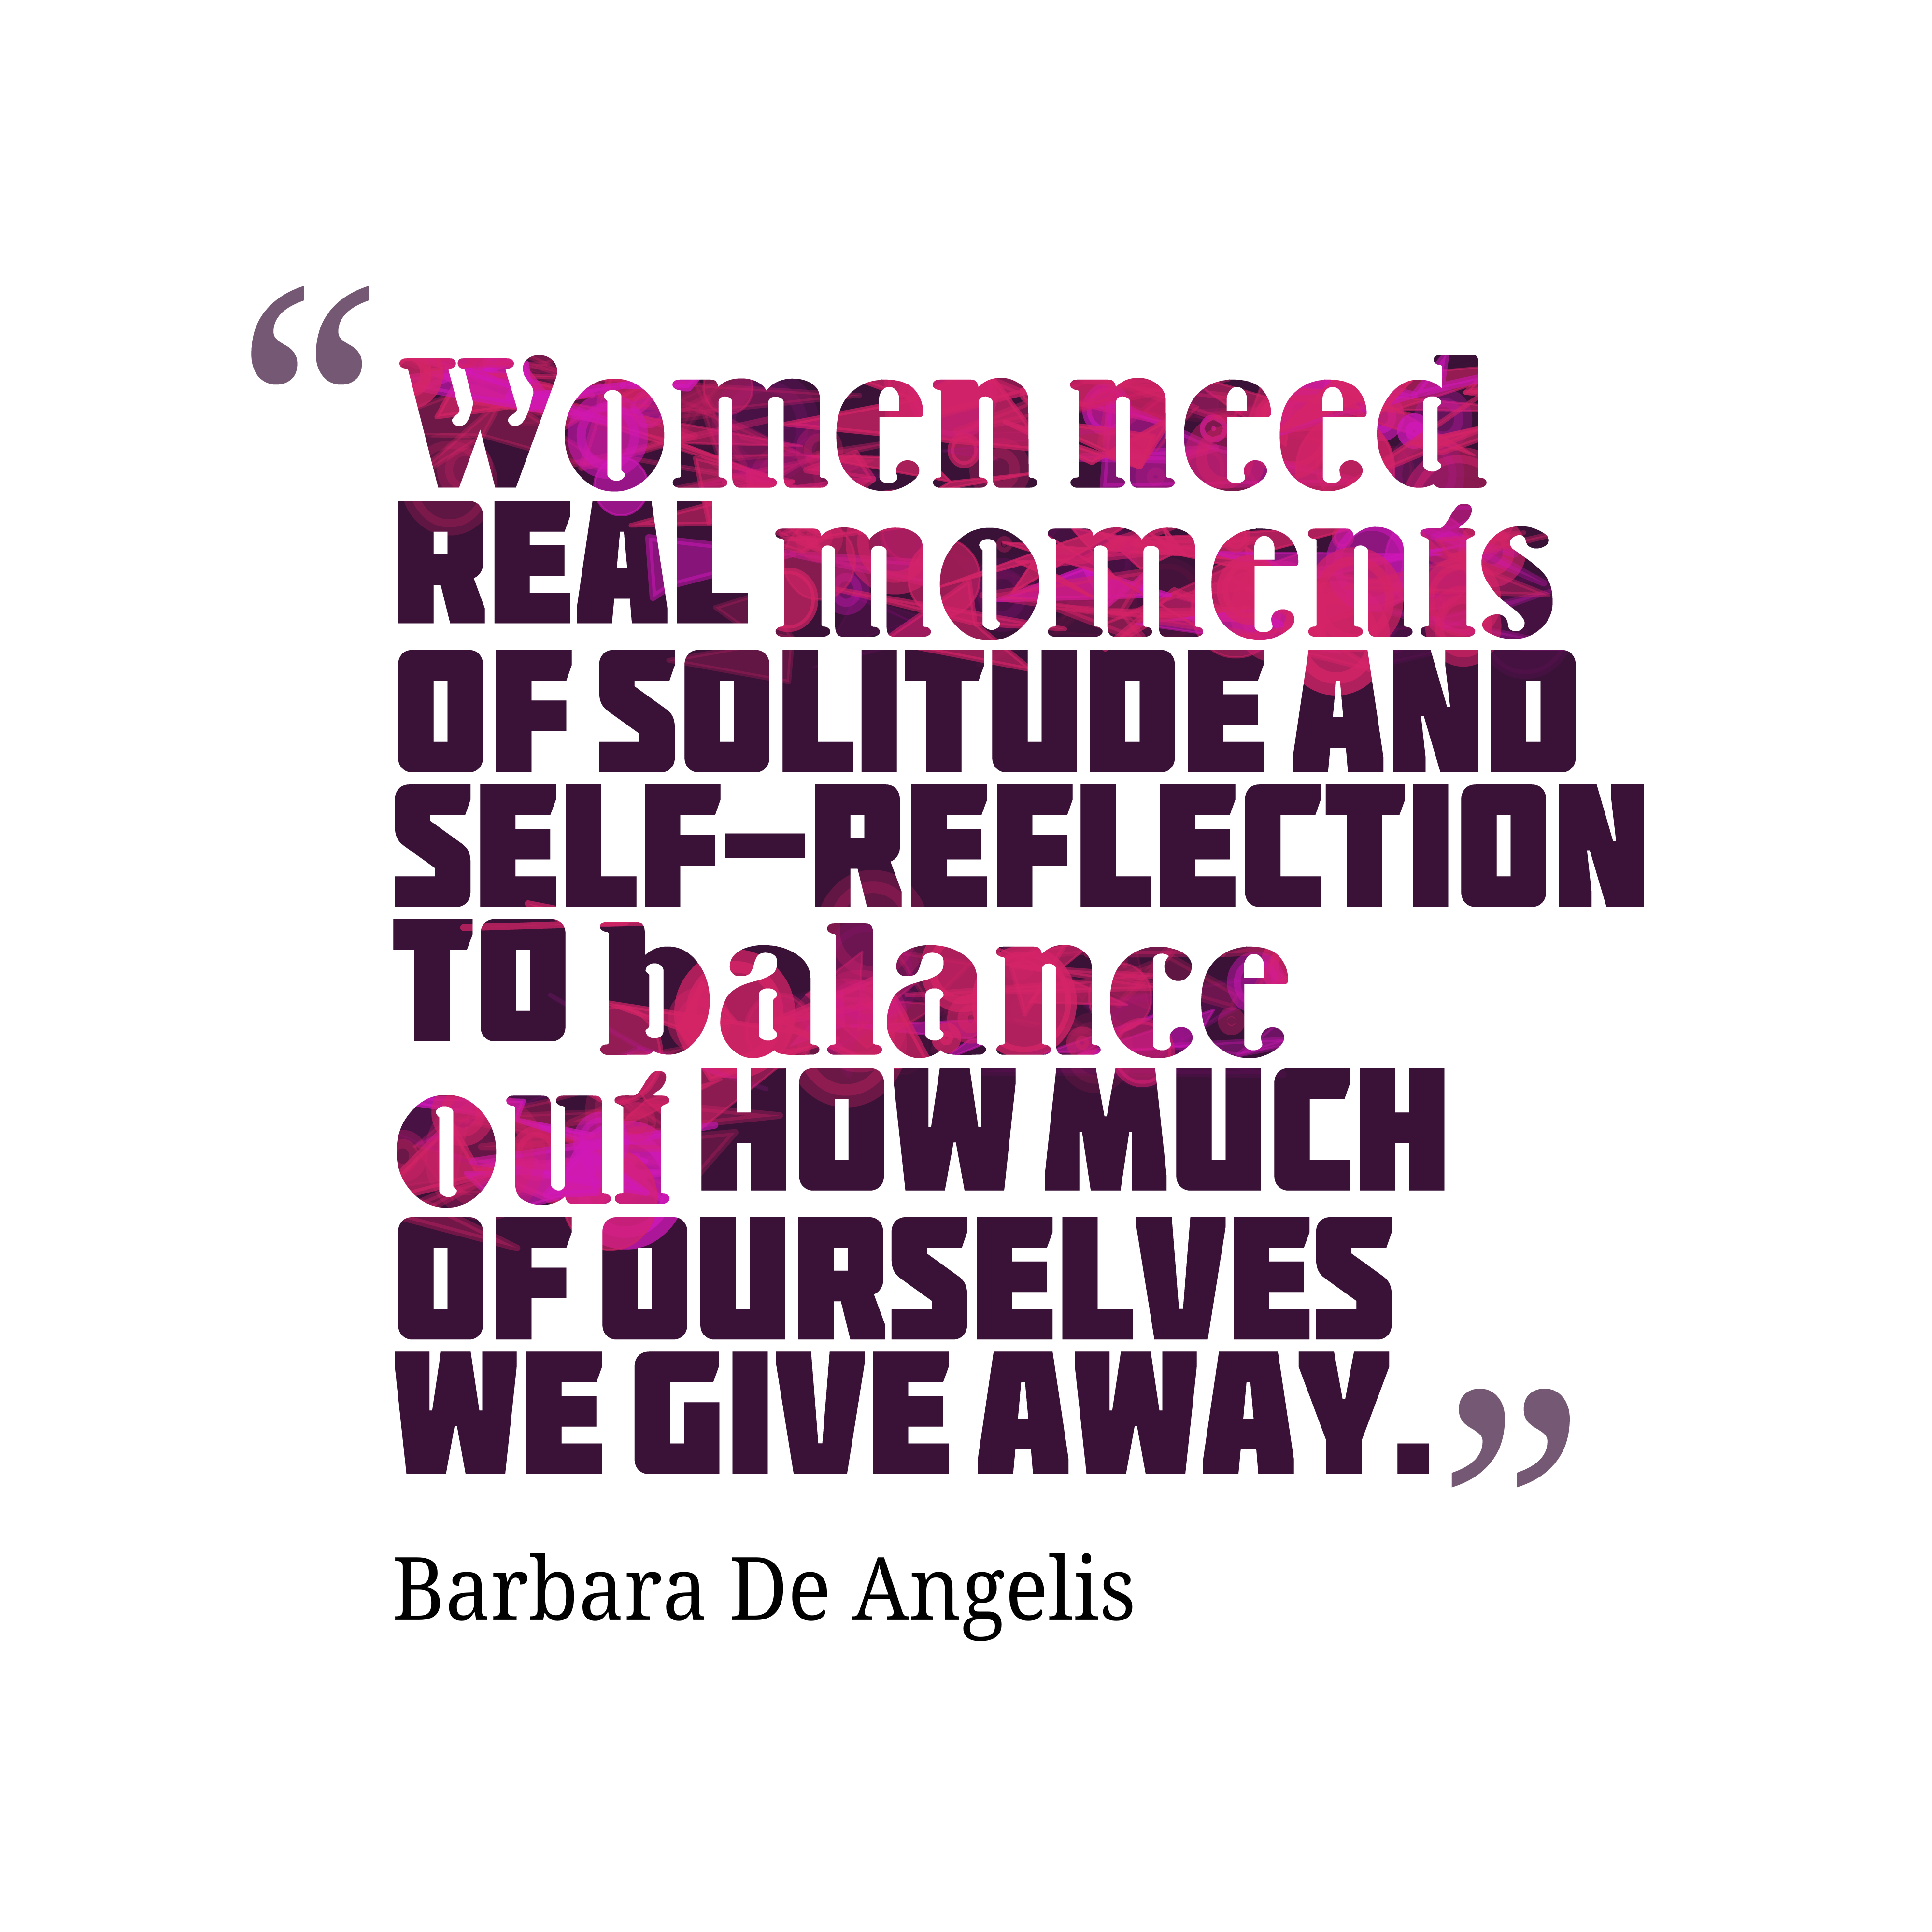 Quotes image of Women need real moments of solitude and self-reflection to balance out how much of ourselves we give away.